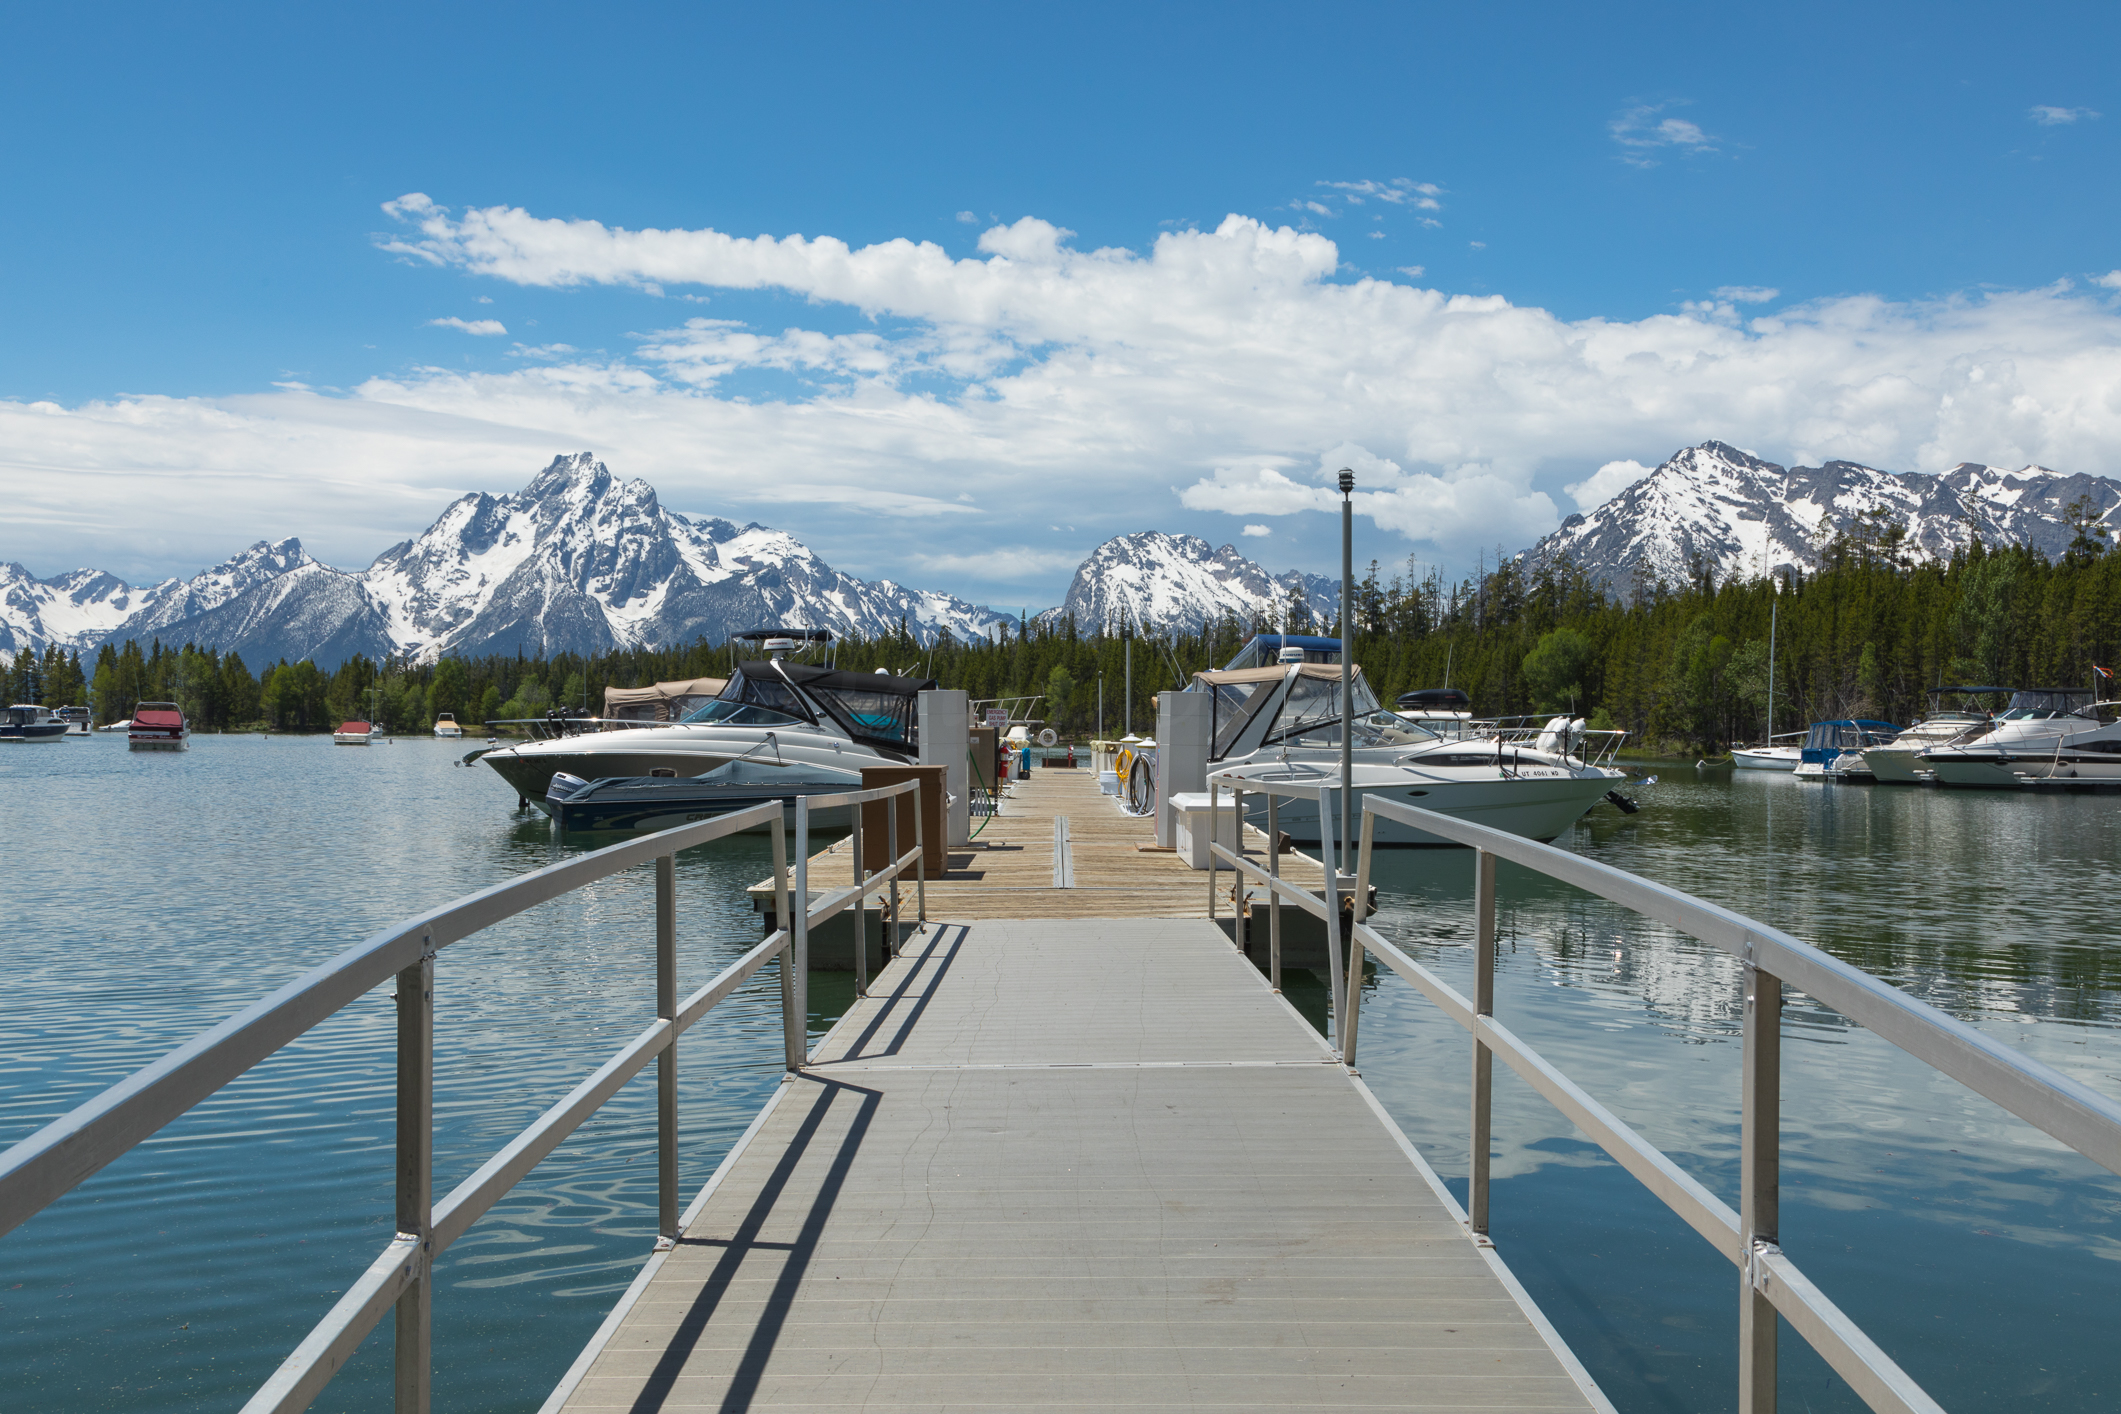 Colter Bay, Image # 2934